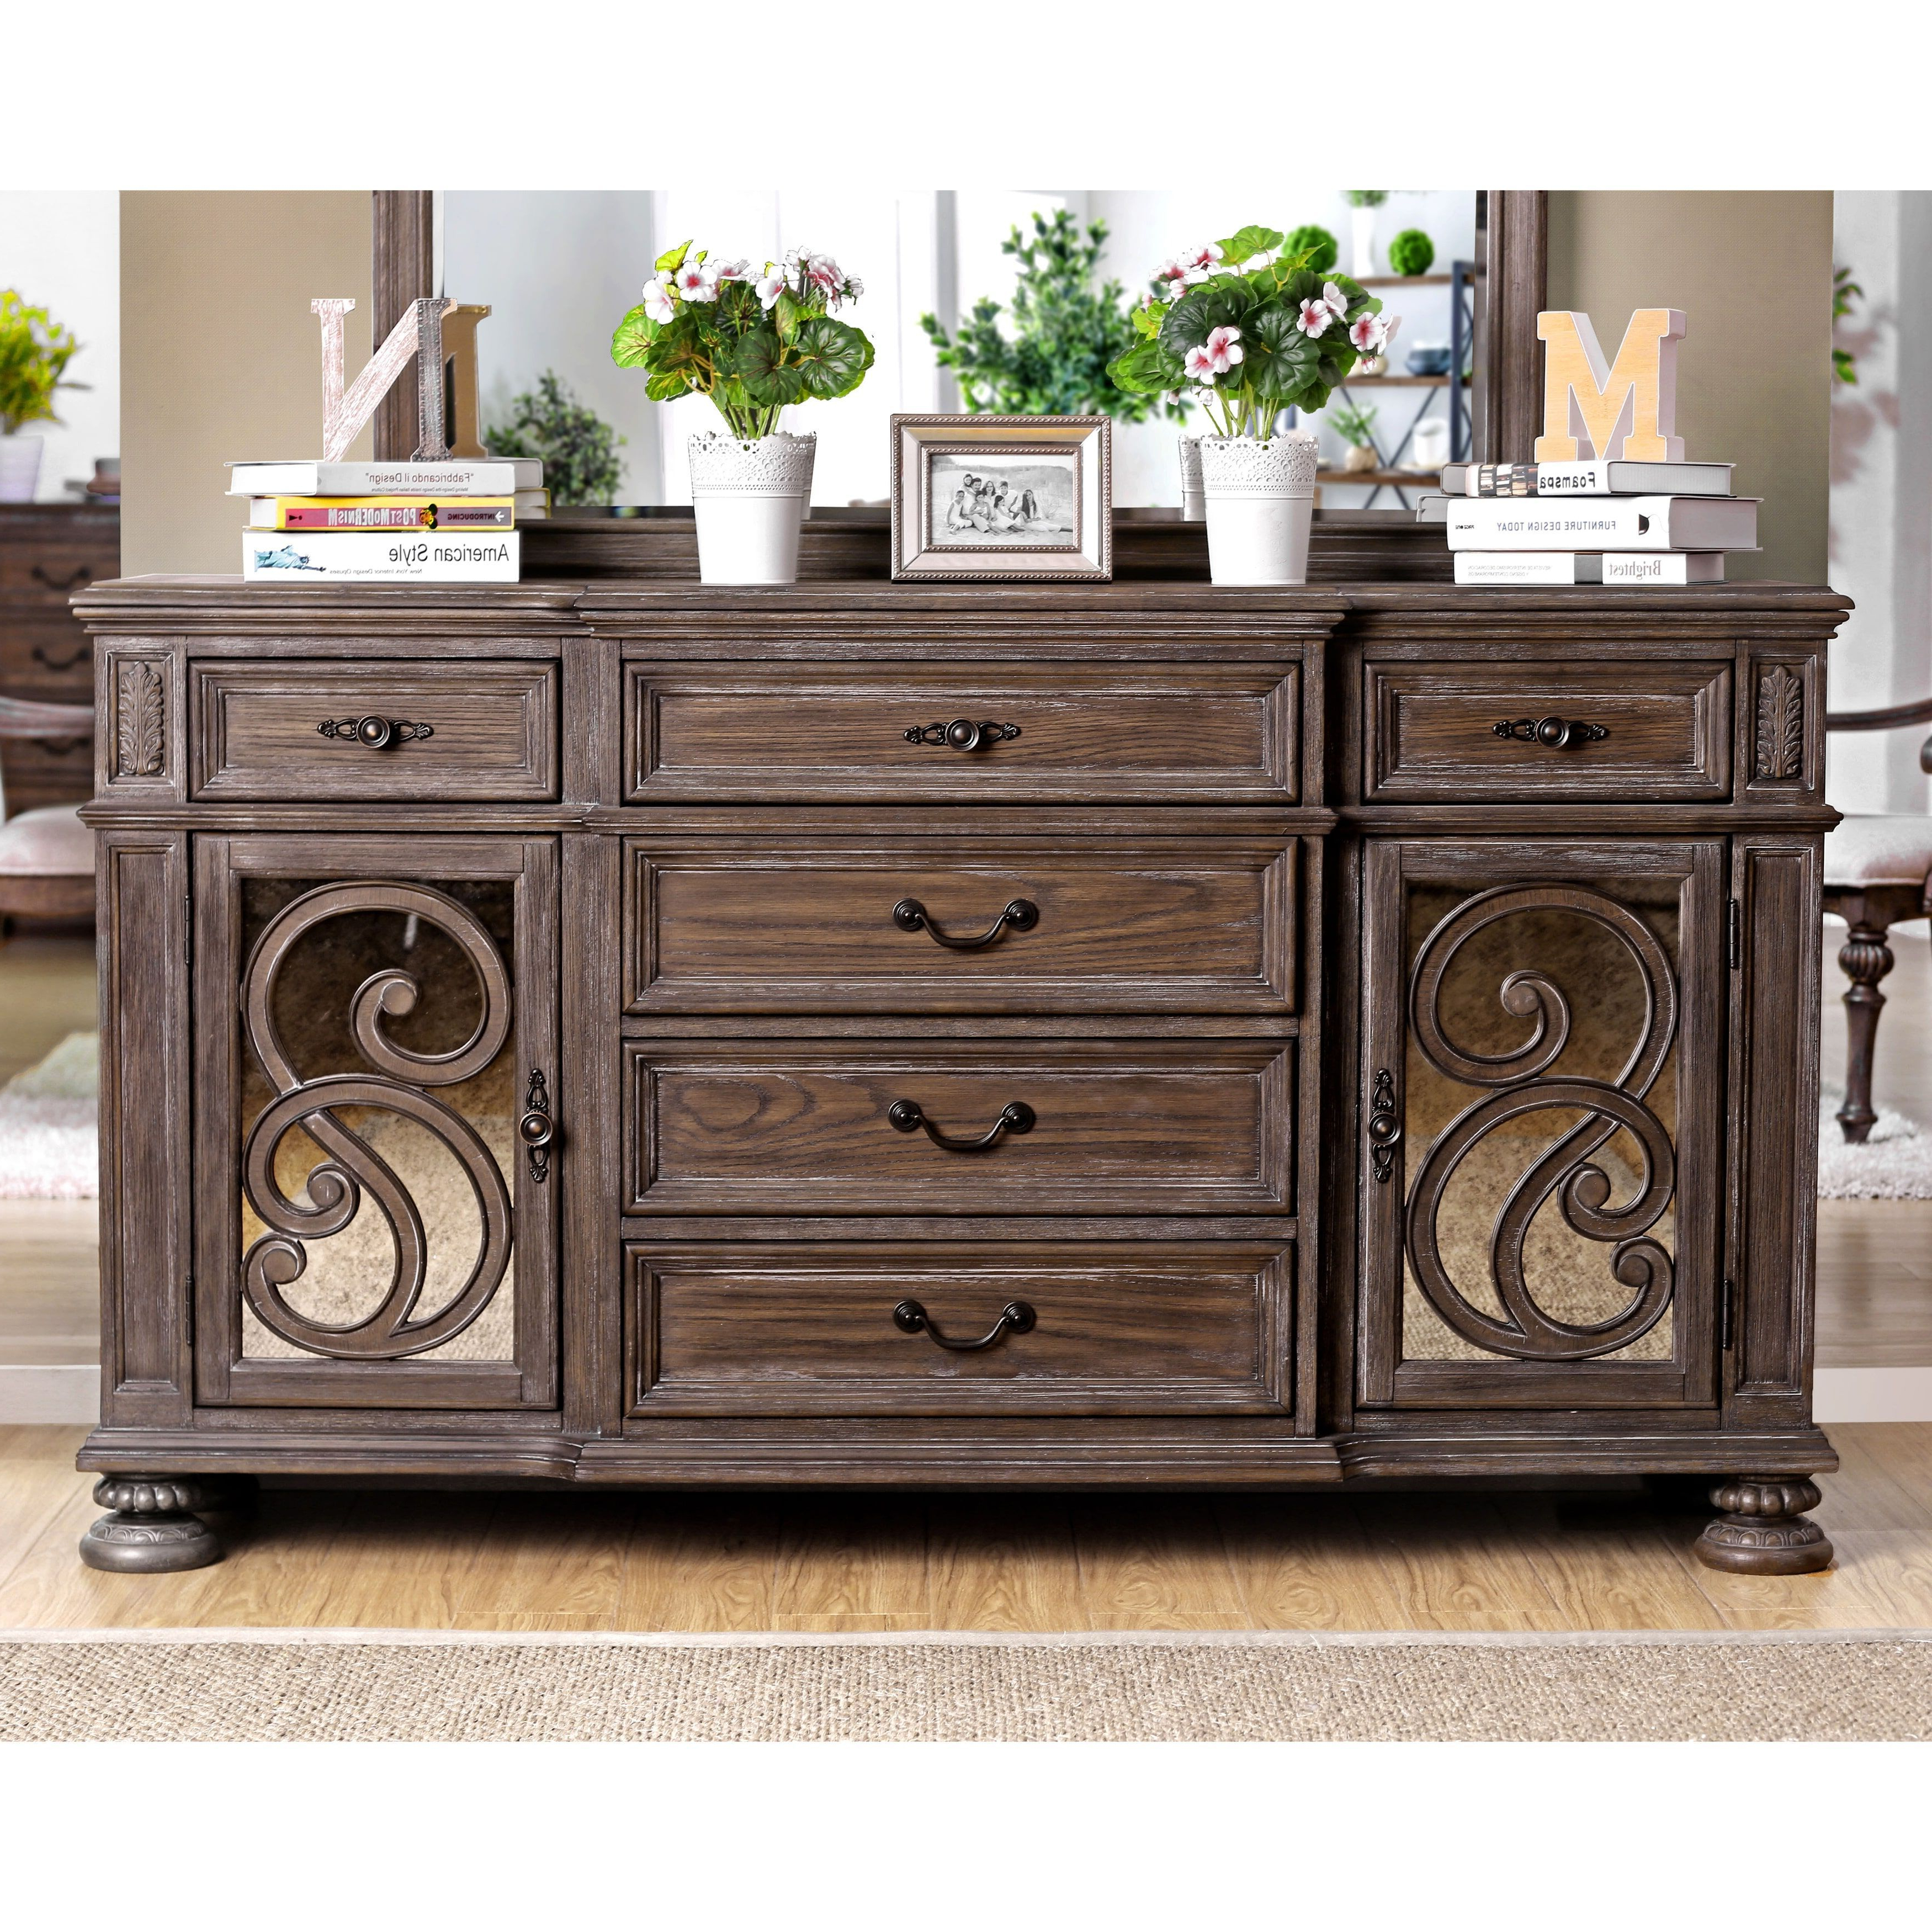 Furniture Of America Dianne Scrolled Mirrored Multi Storage Pertaining To Emmaline Sideboards (View 15 of 20)